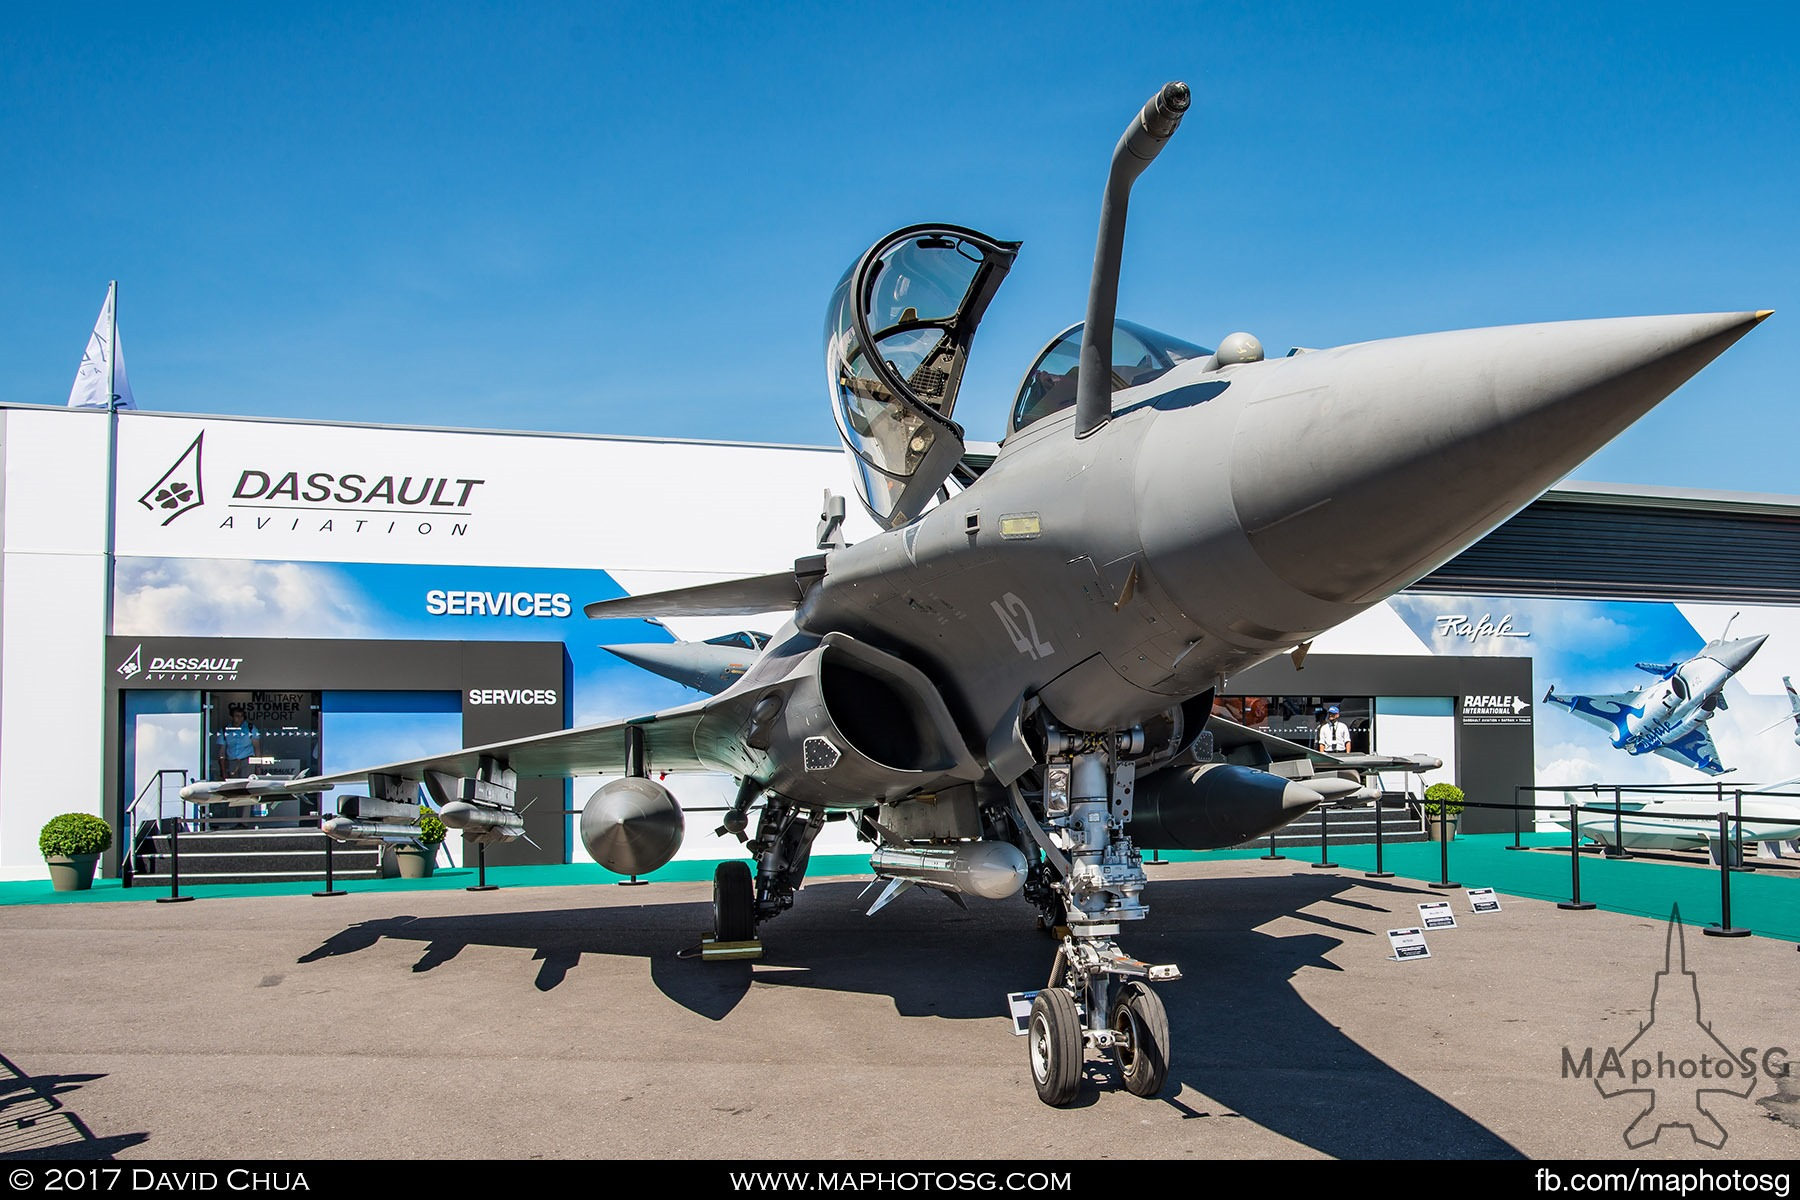 11. Static Display of the Dassault Aviation Rafale C fighter loaded with missiles and fuel tanks.